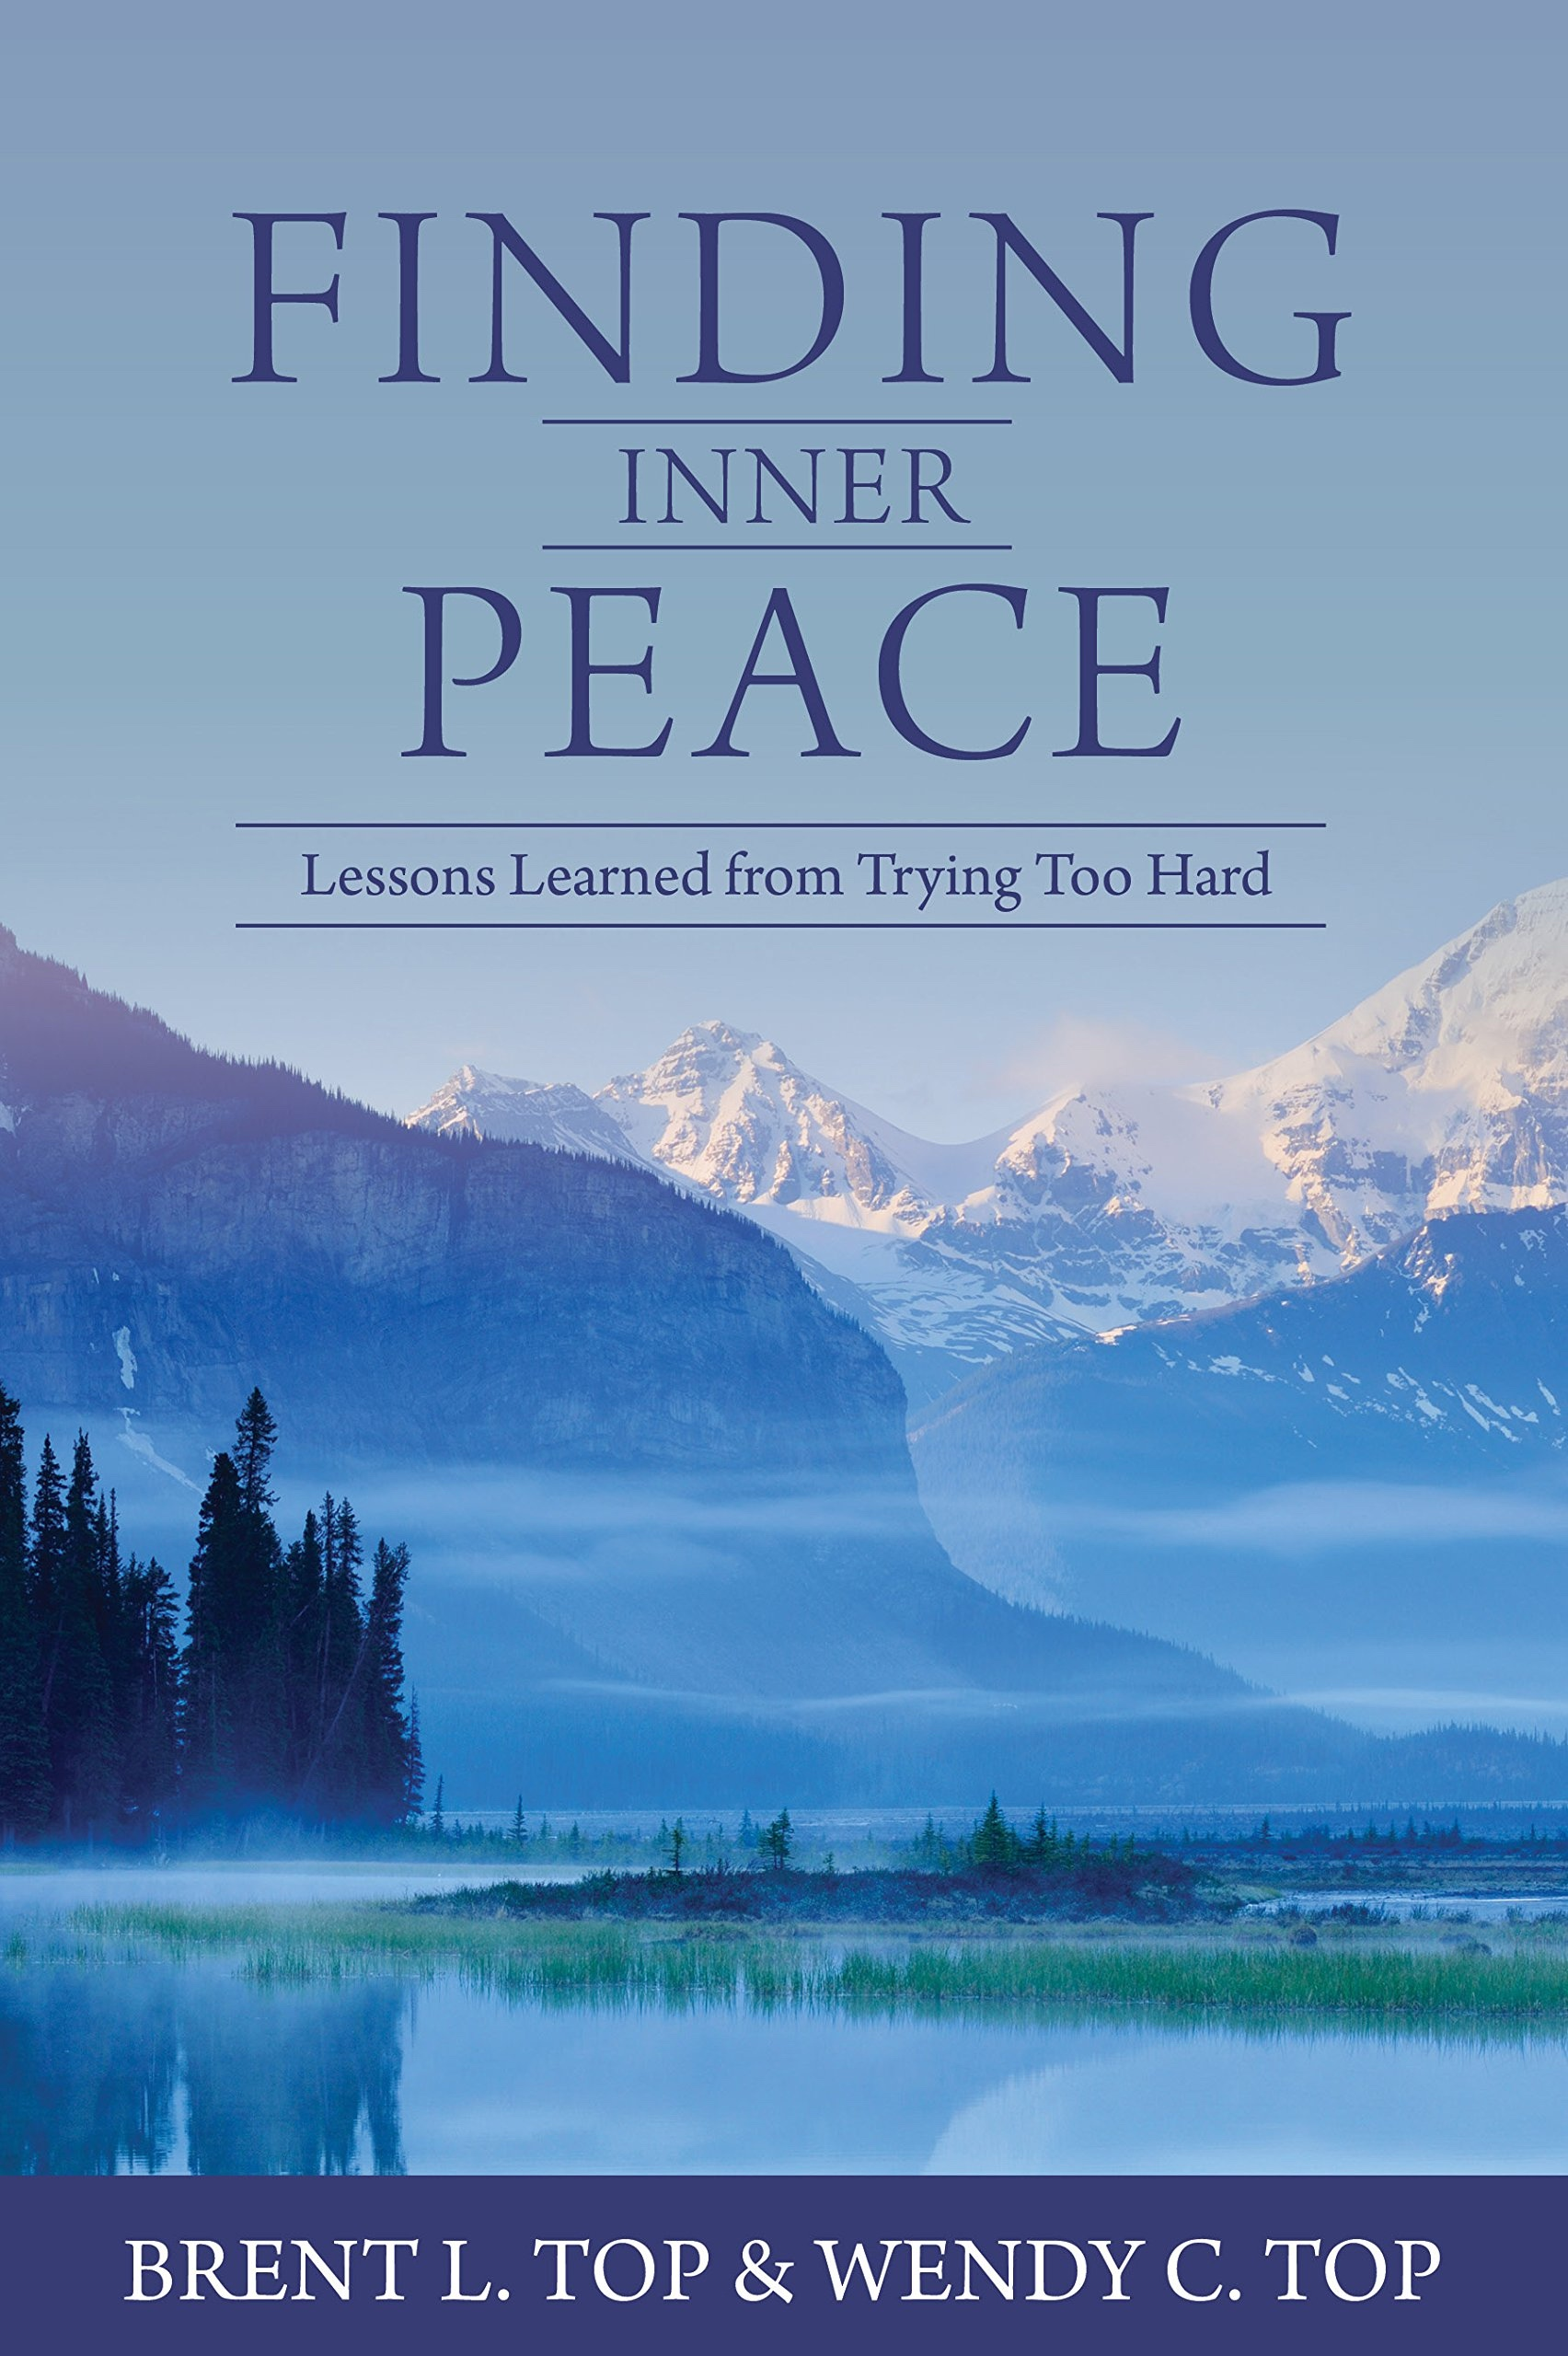 Finding Inner Peace;   Lessons Learned from Trying Too Hard, Brent L. Top and Wendy C. Top